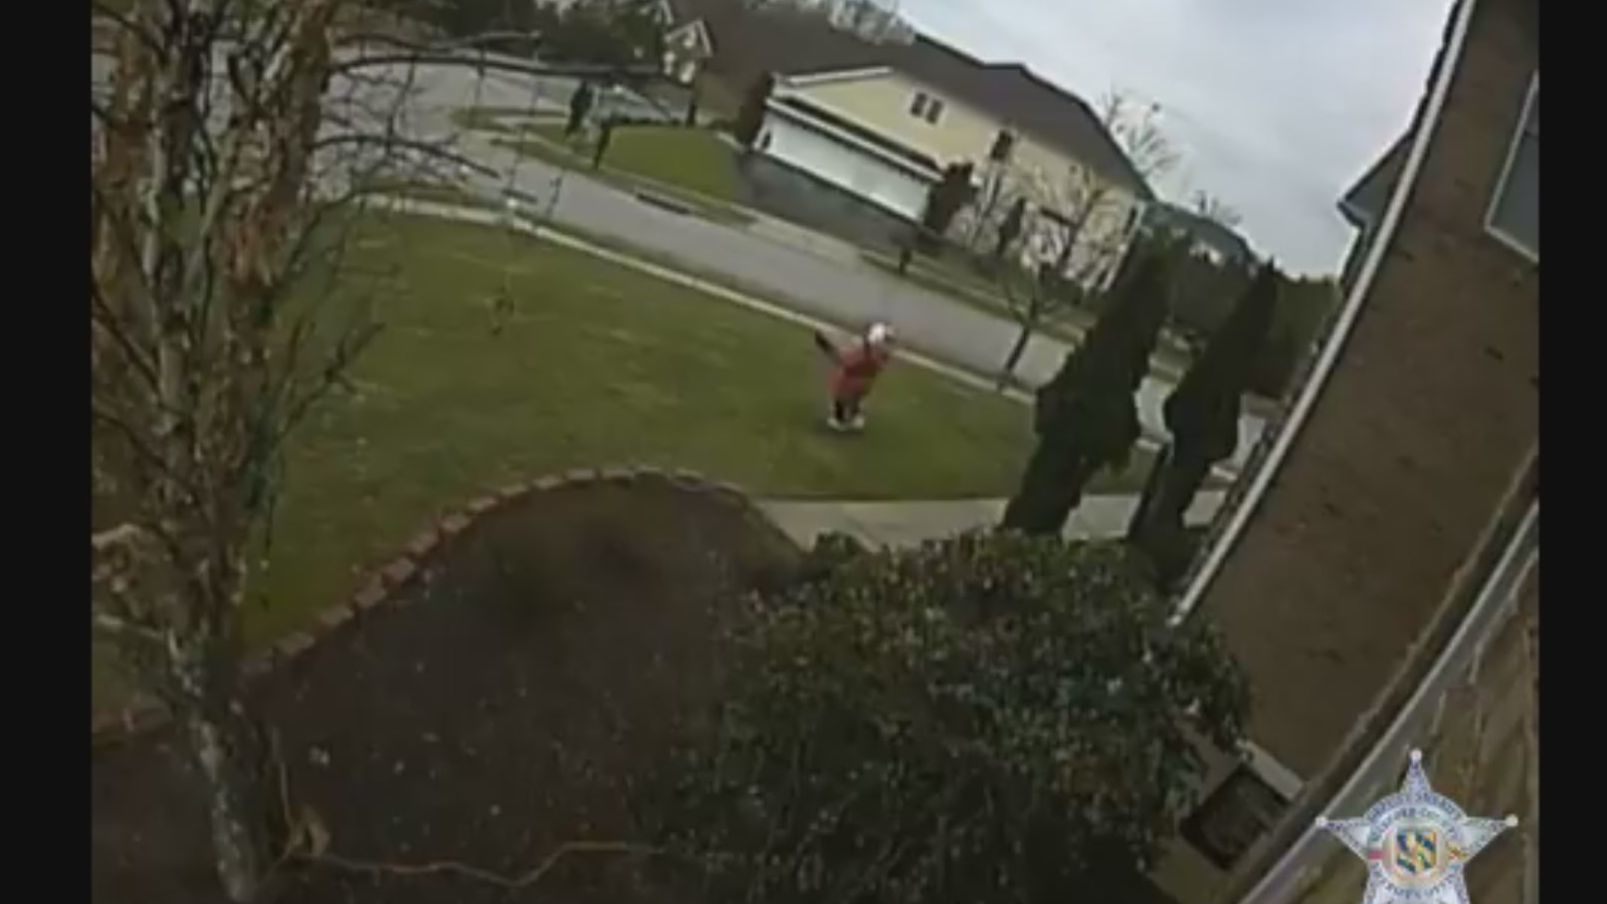 Harford Sheriff: Security cameras indicate young girl was directed to steal packages in Bel Air